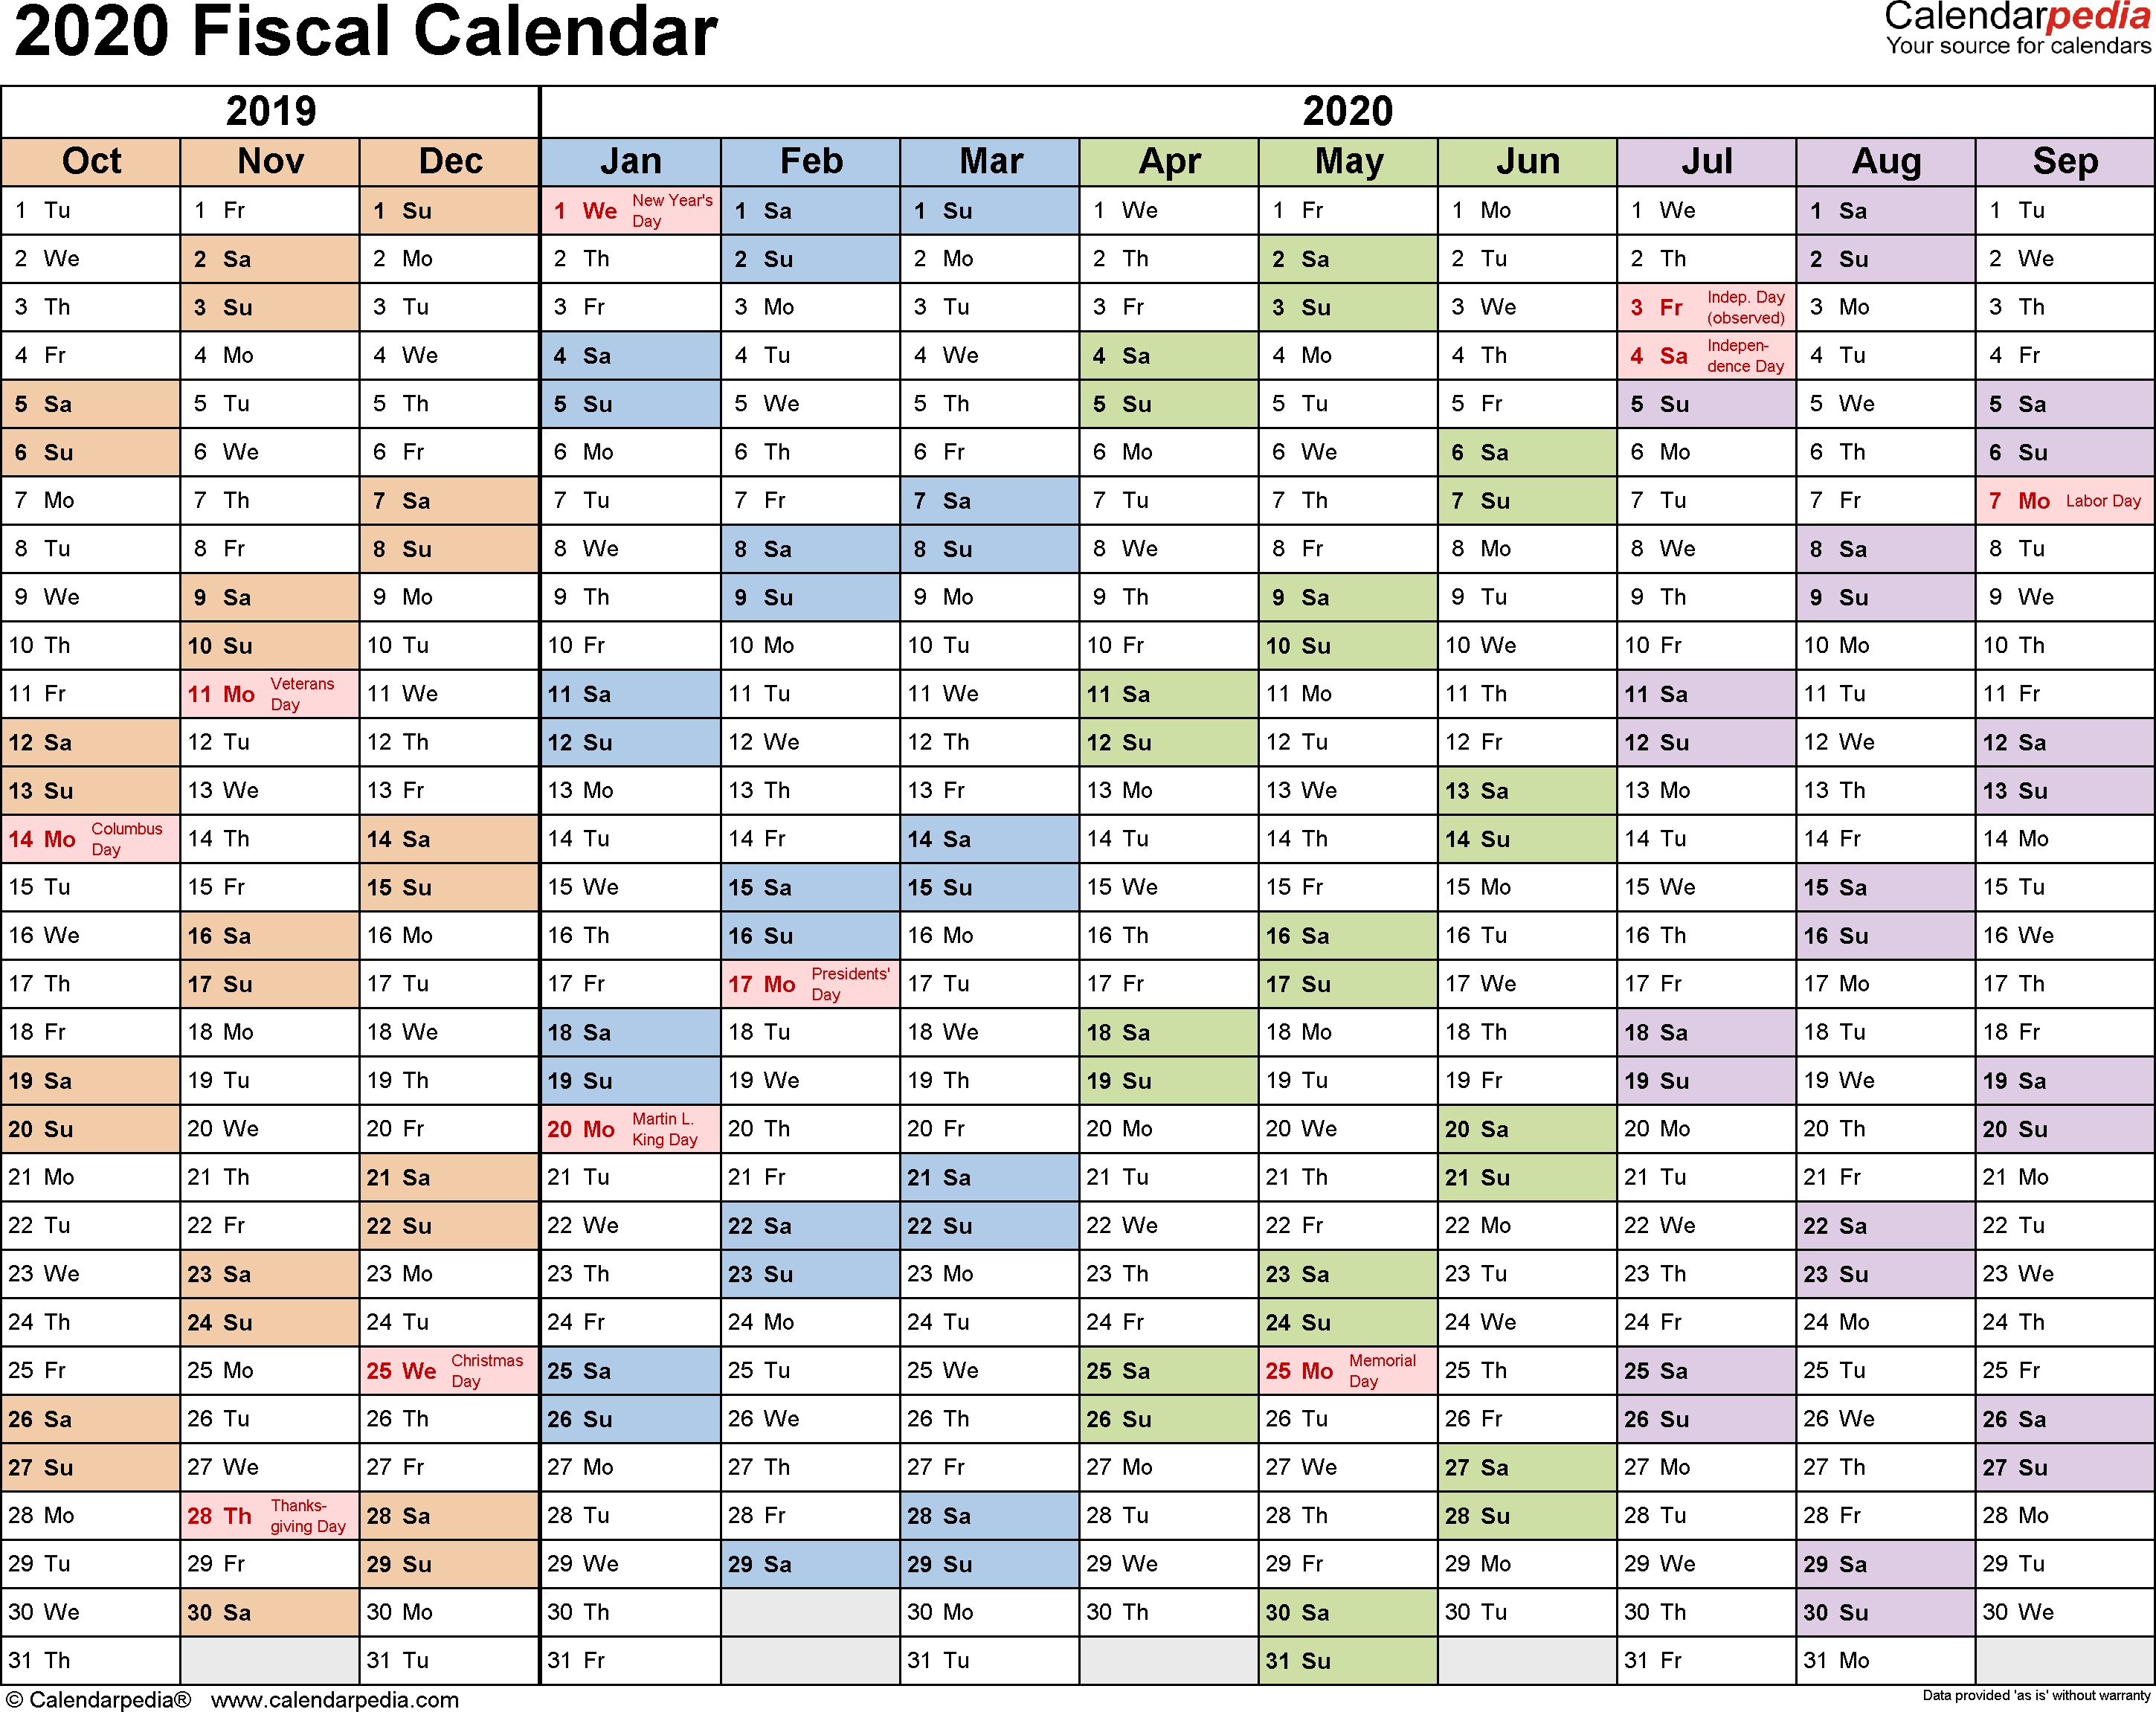 Fiscal Calendars 2020 - Free Printable Pdf Templates within Financial Calendar 2019 With Week Numbers